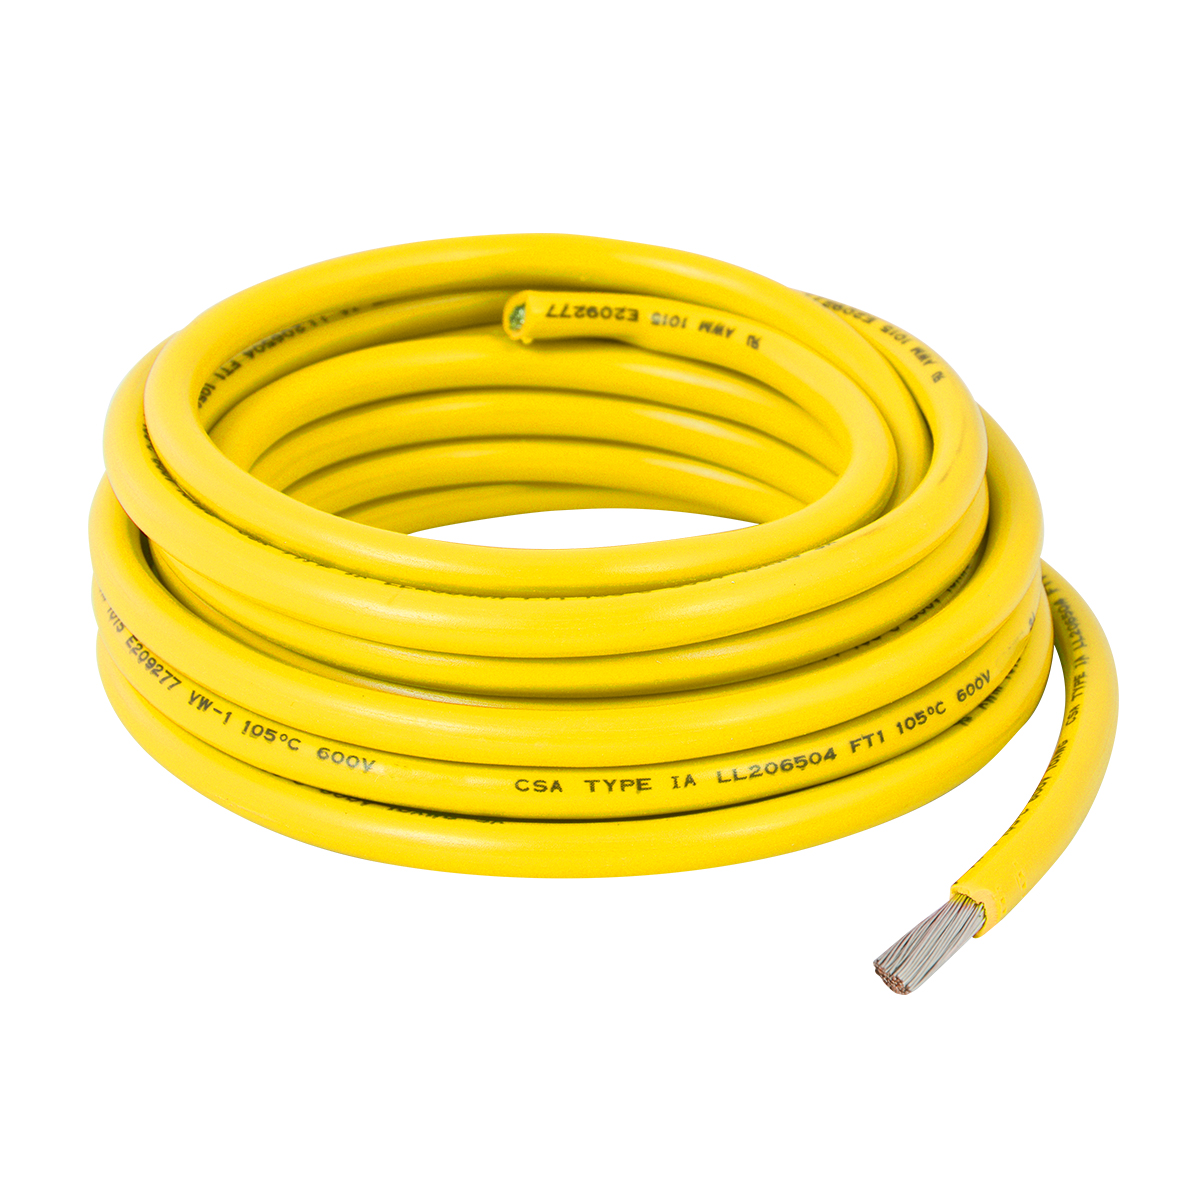 55024 Yellow UL Listed Primary Wires in 18 Gauge